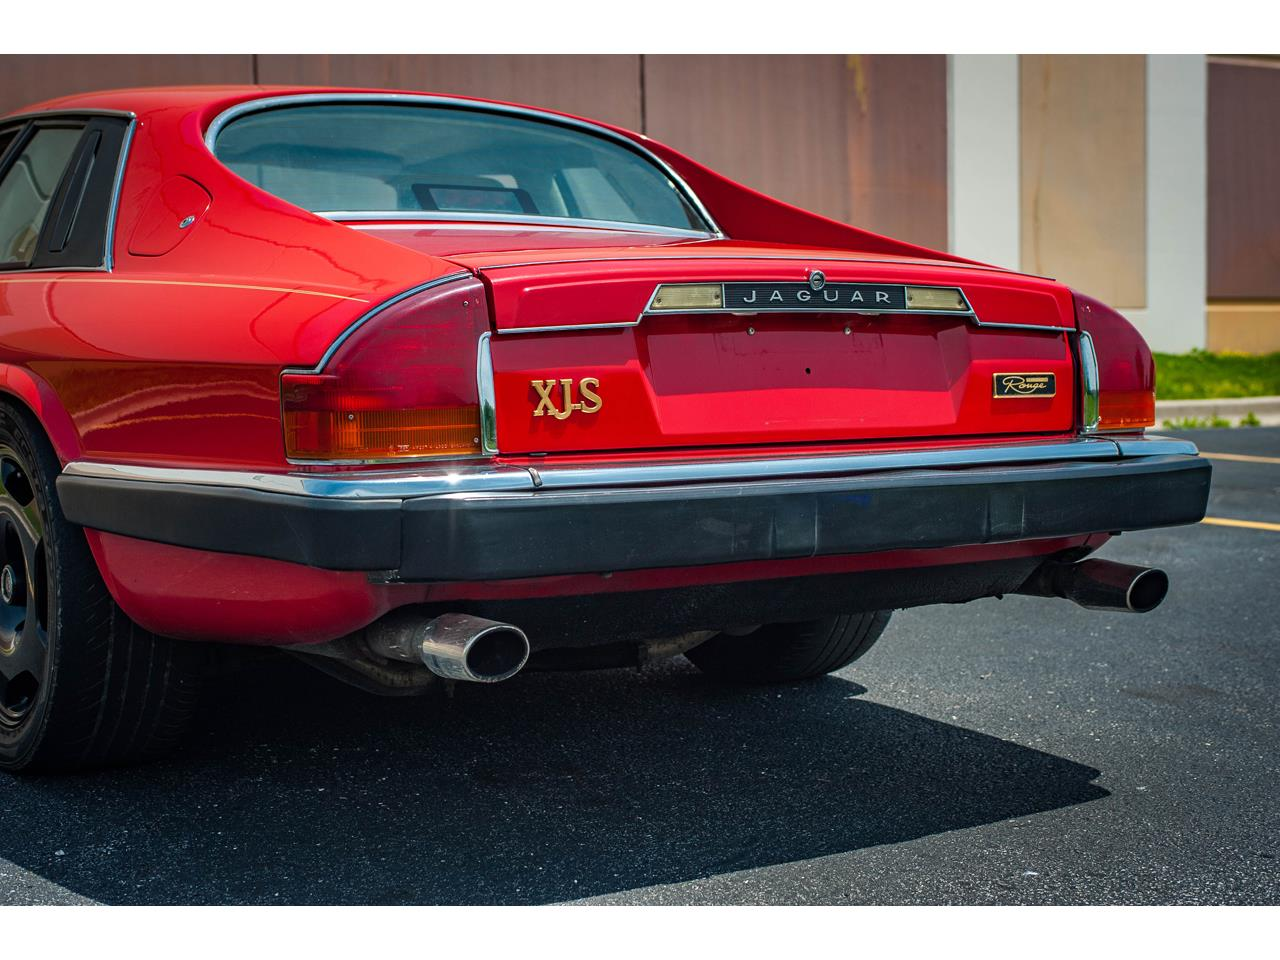 Large Picture of '89 XJS located in Illinois - $20,000.00 Offered by Gateway Classic Cars - St. Louis - QB9L